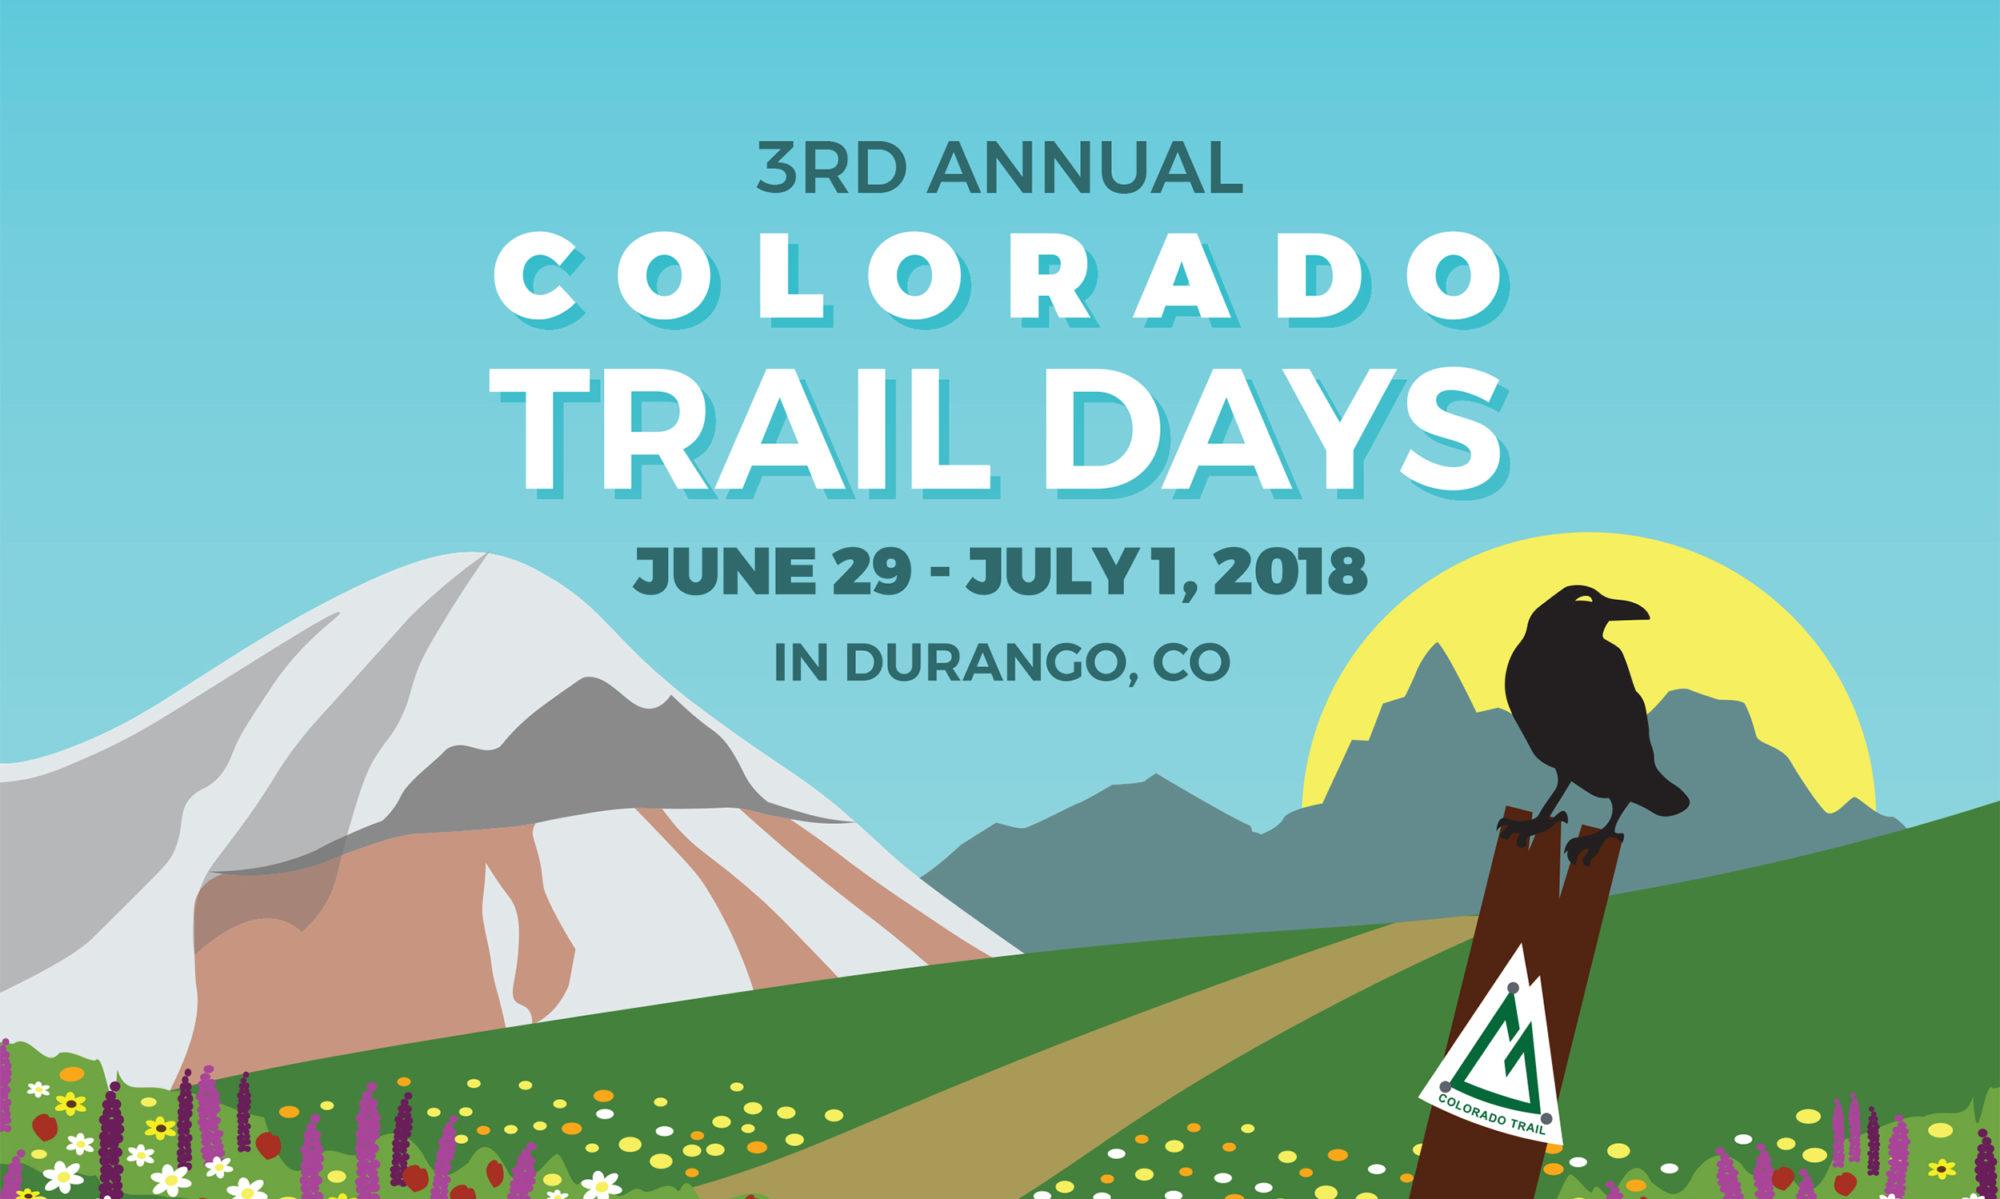 Colorado Trail Days | June 29 - July 1, 2018 | Durango, CO